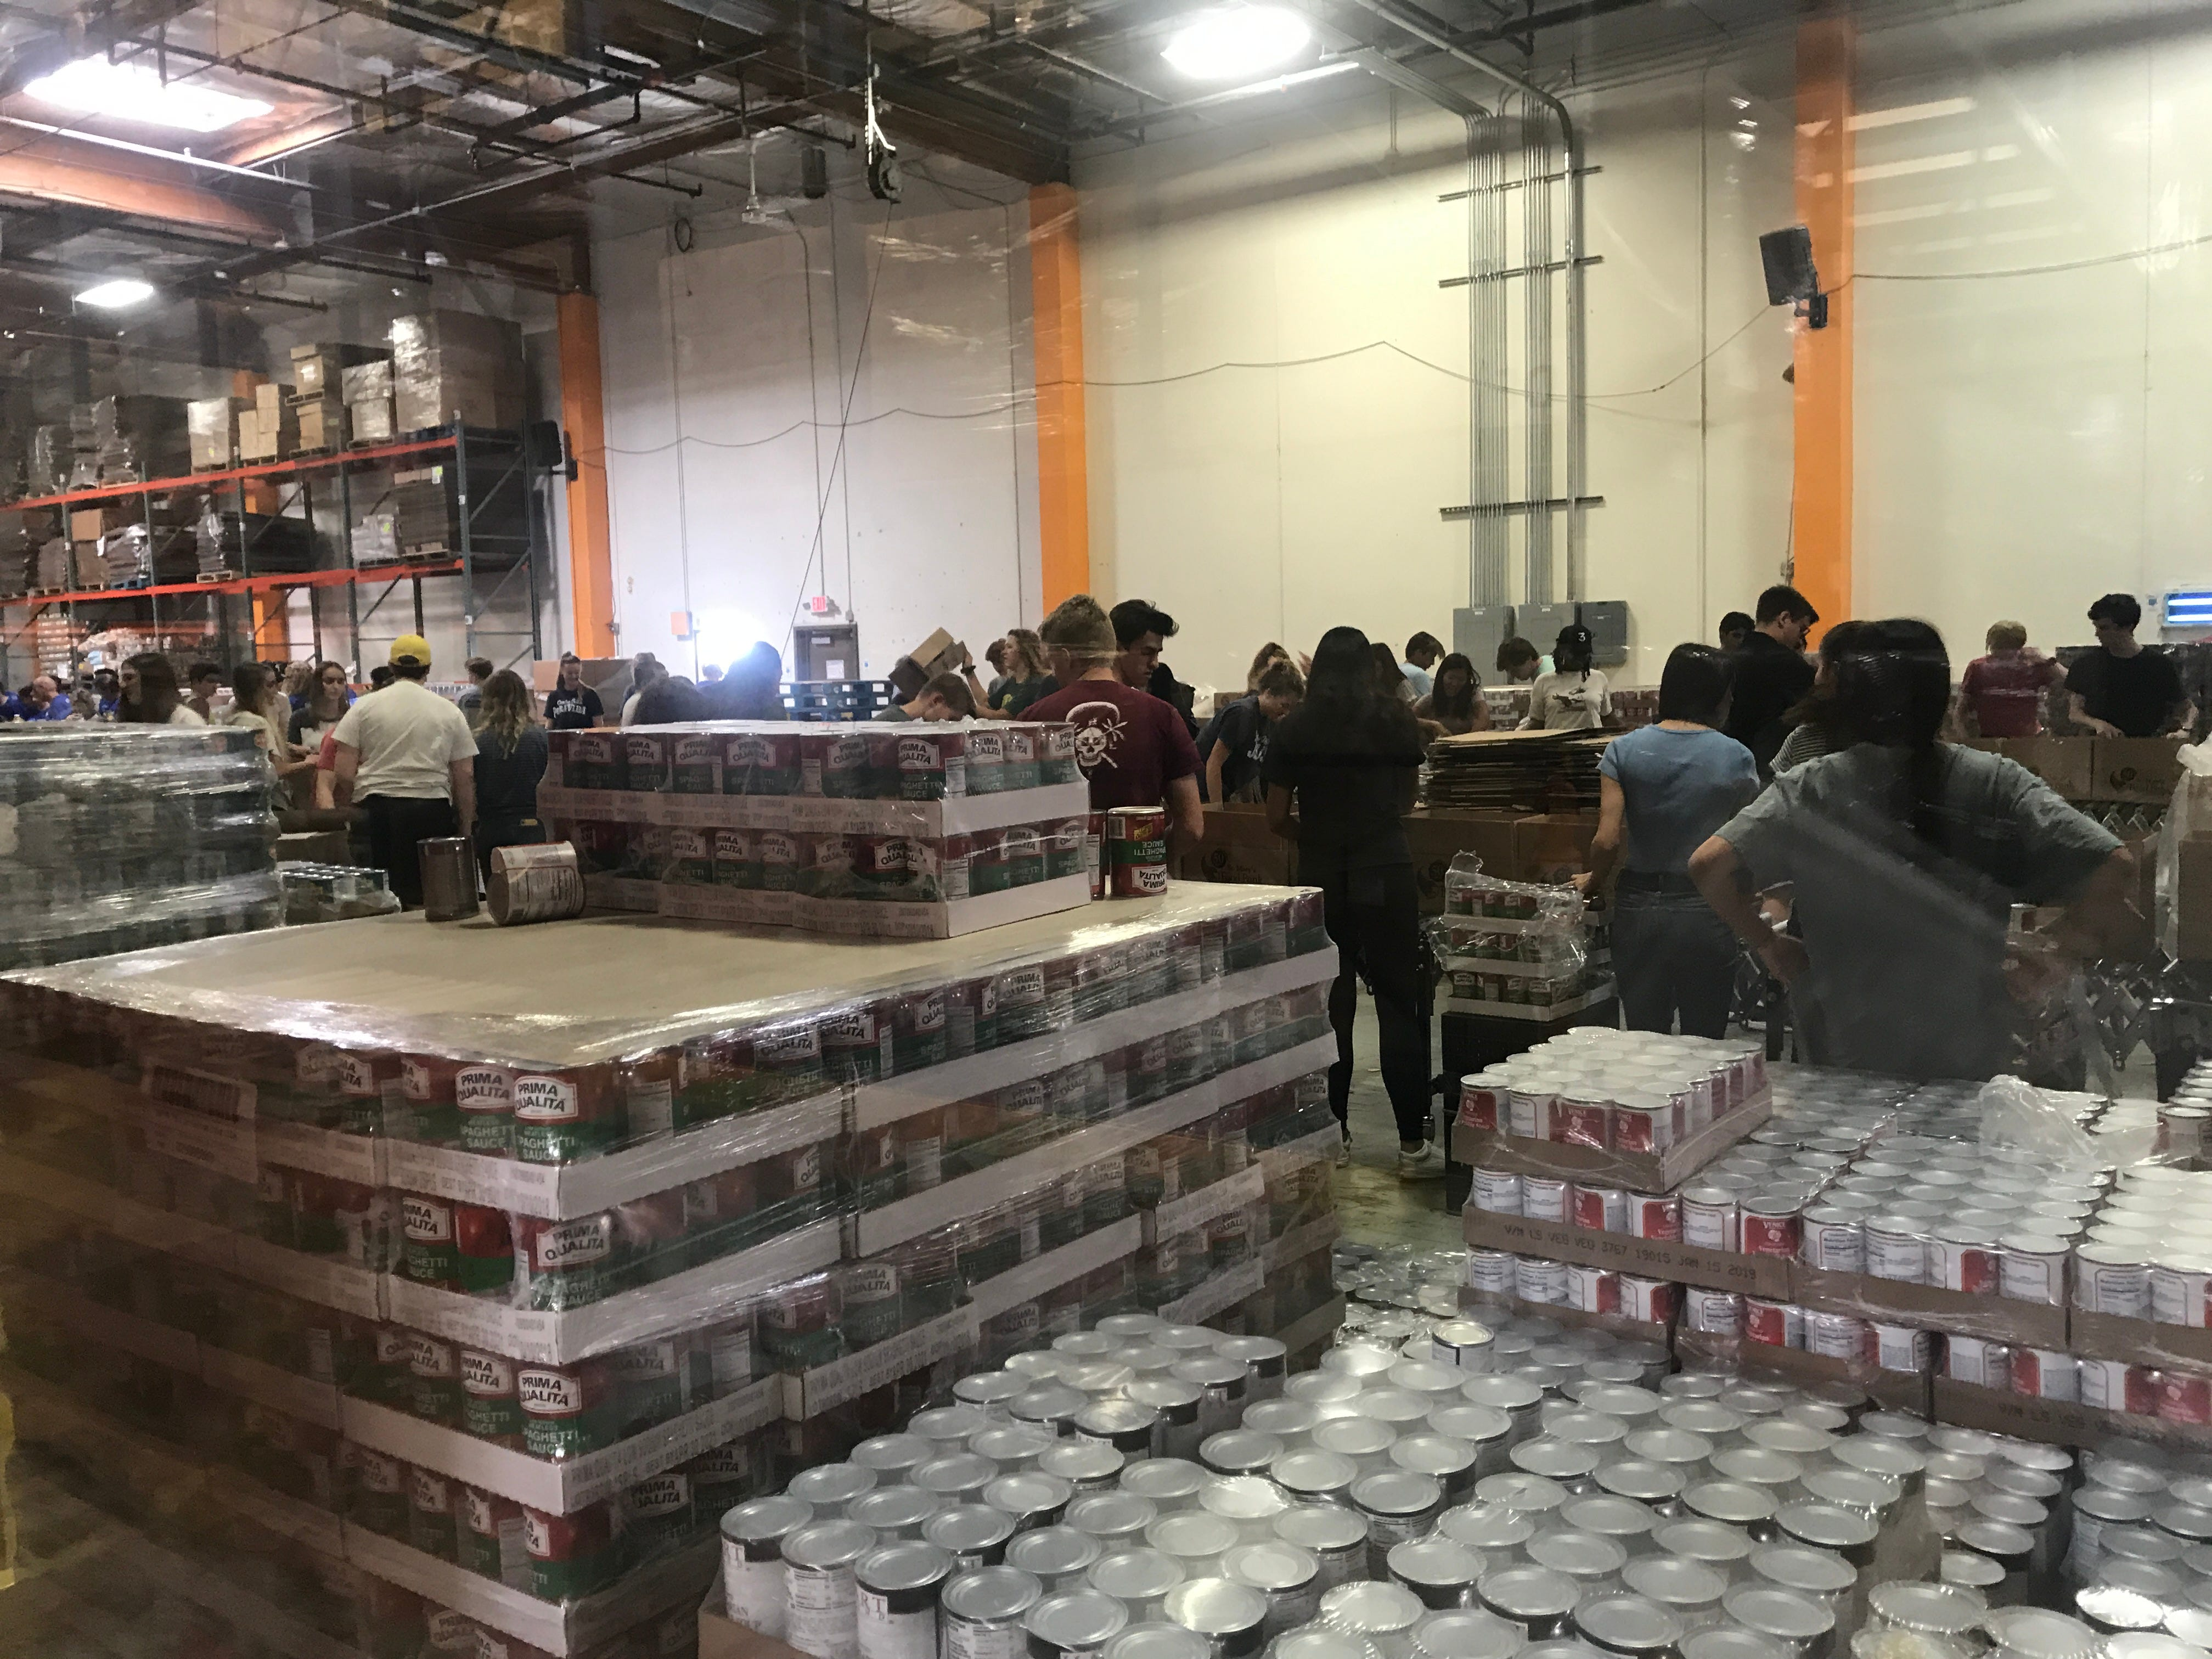 Volunteers at St. Mary's Food Bank pull cans from pallets to stock emergency food boxes on May 9, 2019.